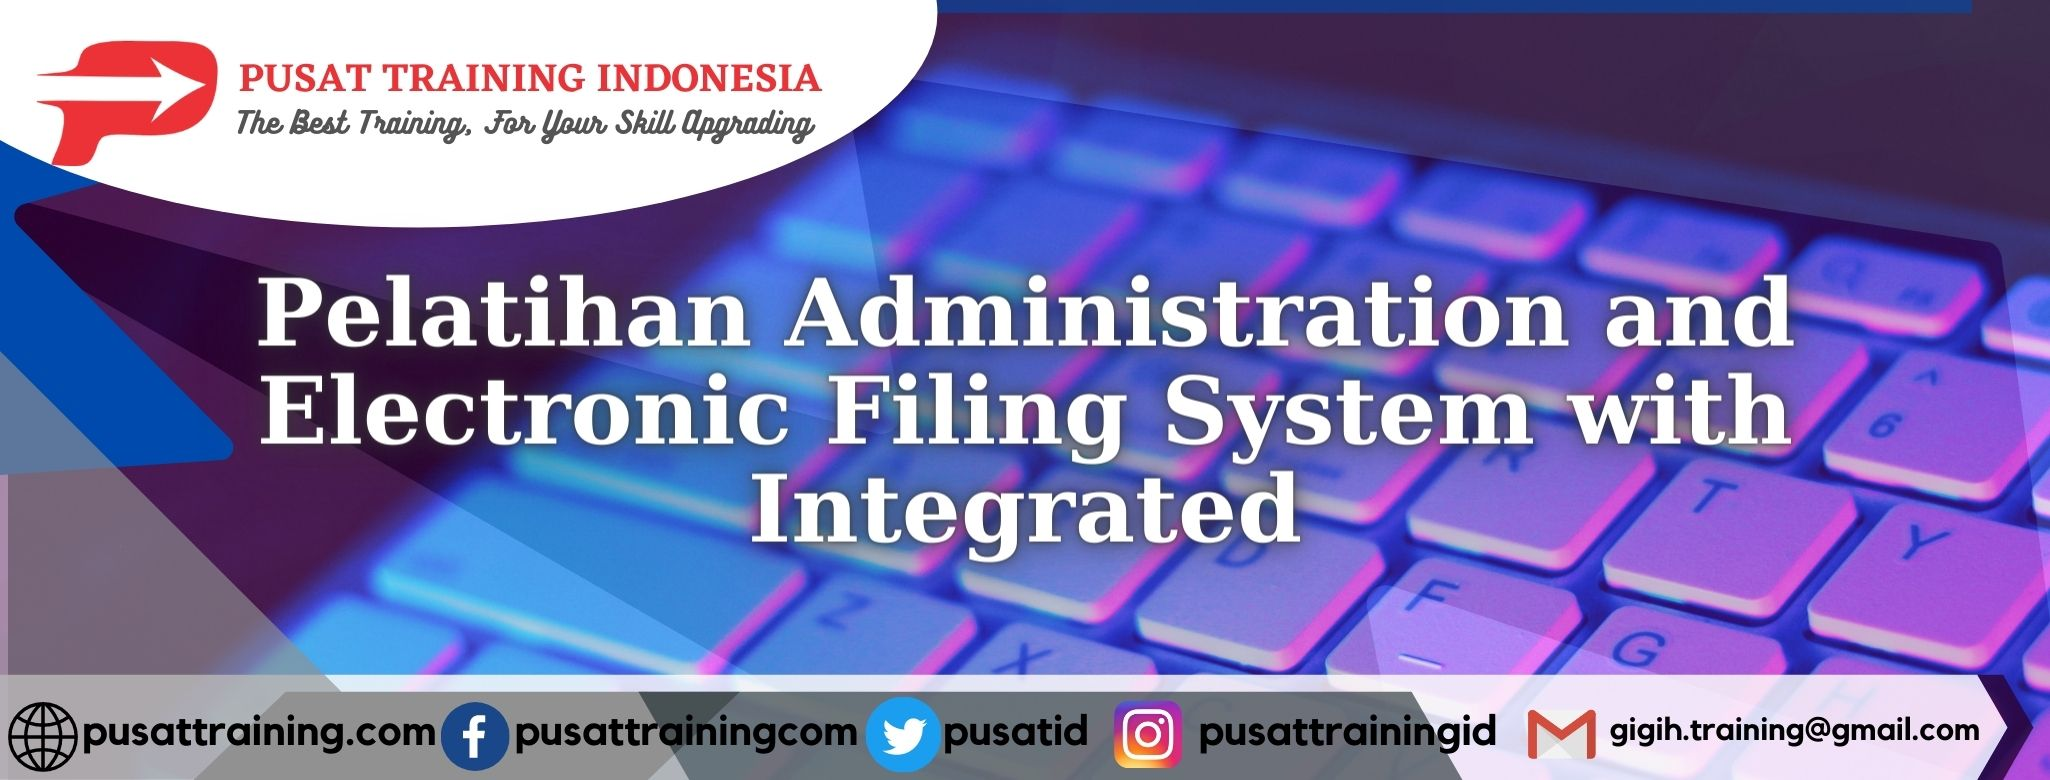 Pelatihan-Administration-and-Electronic-Filing-System-with-Integrated